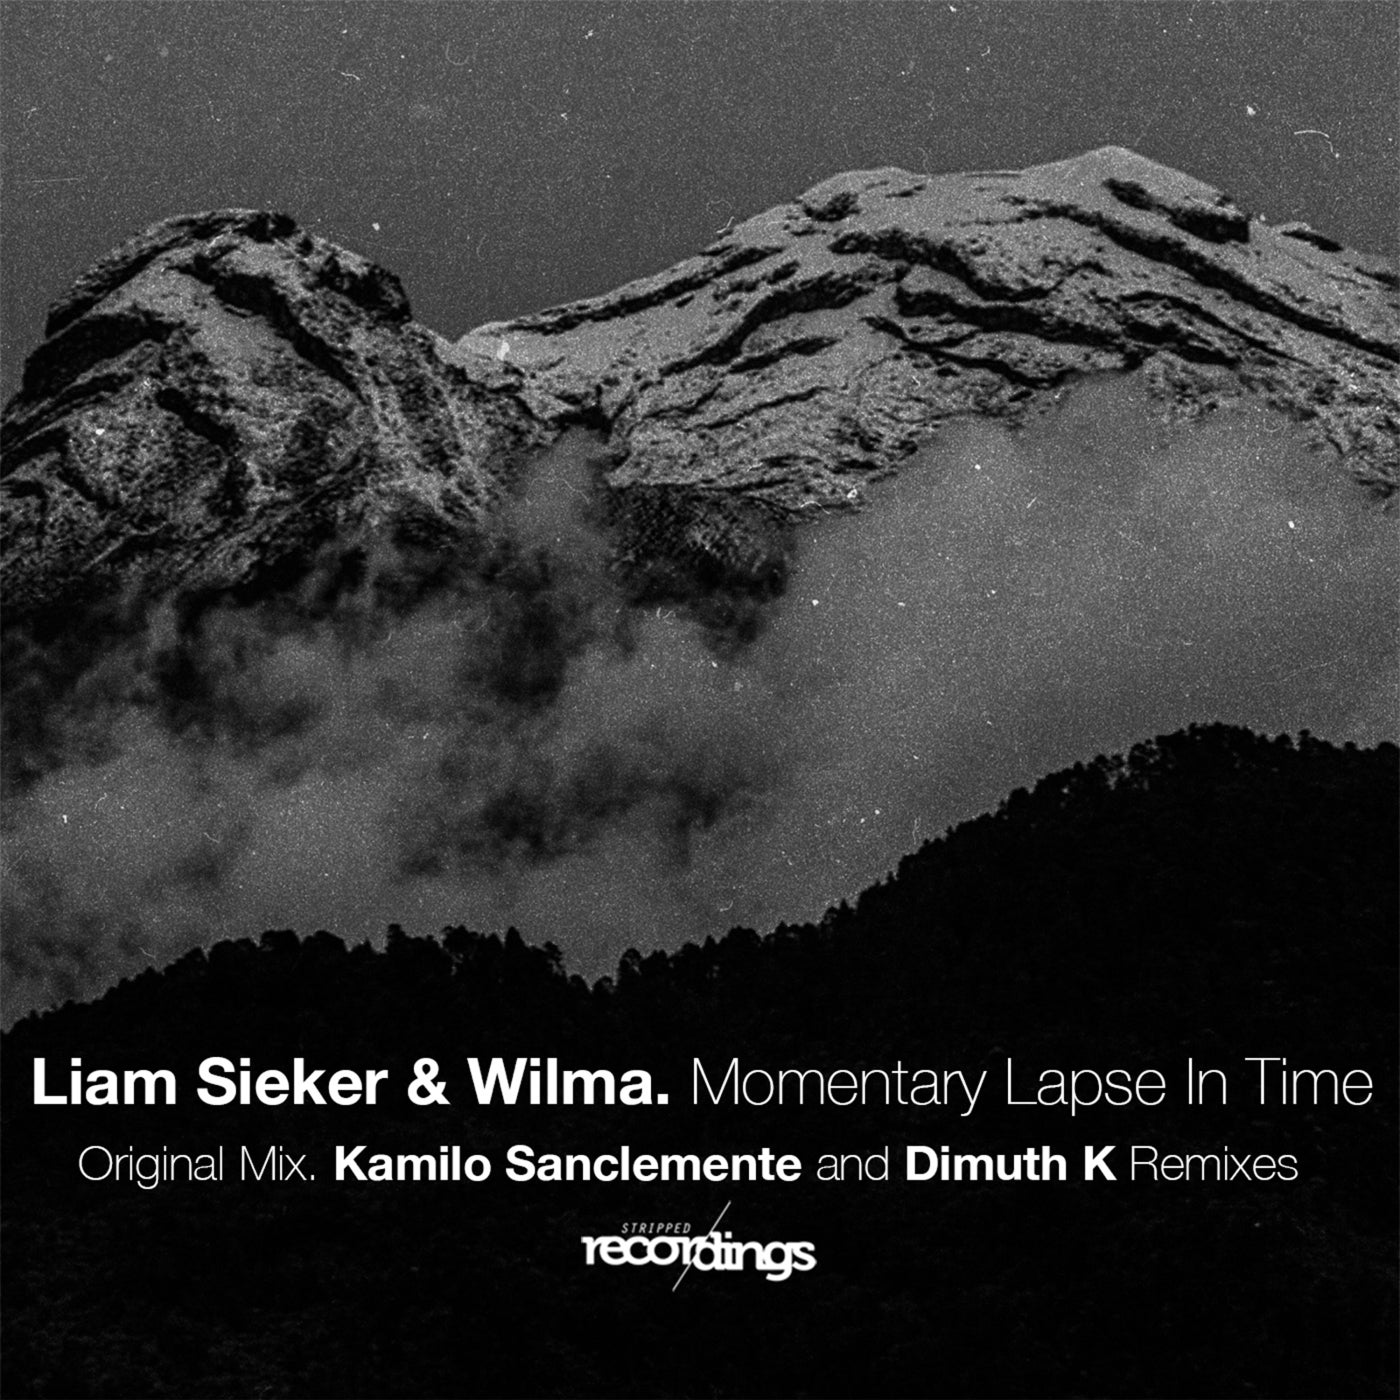 Momentary Lapse in Time (Dimuth K Remix)